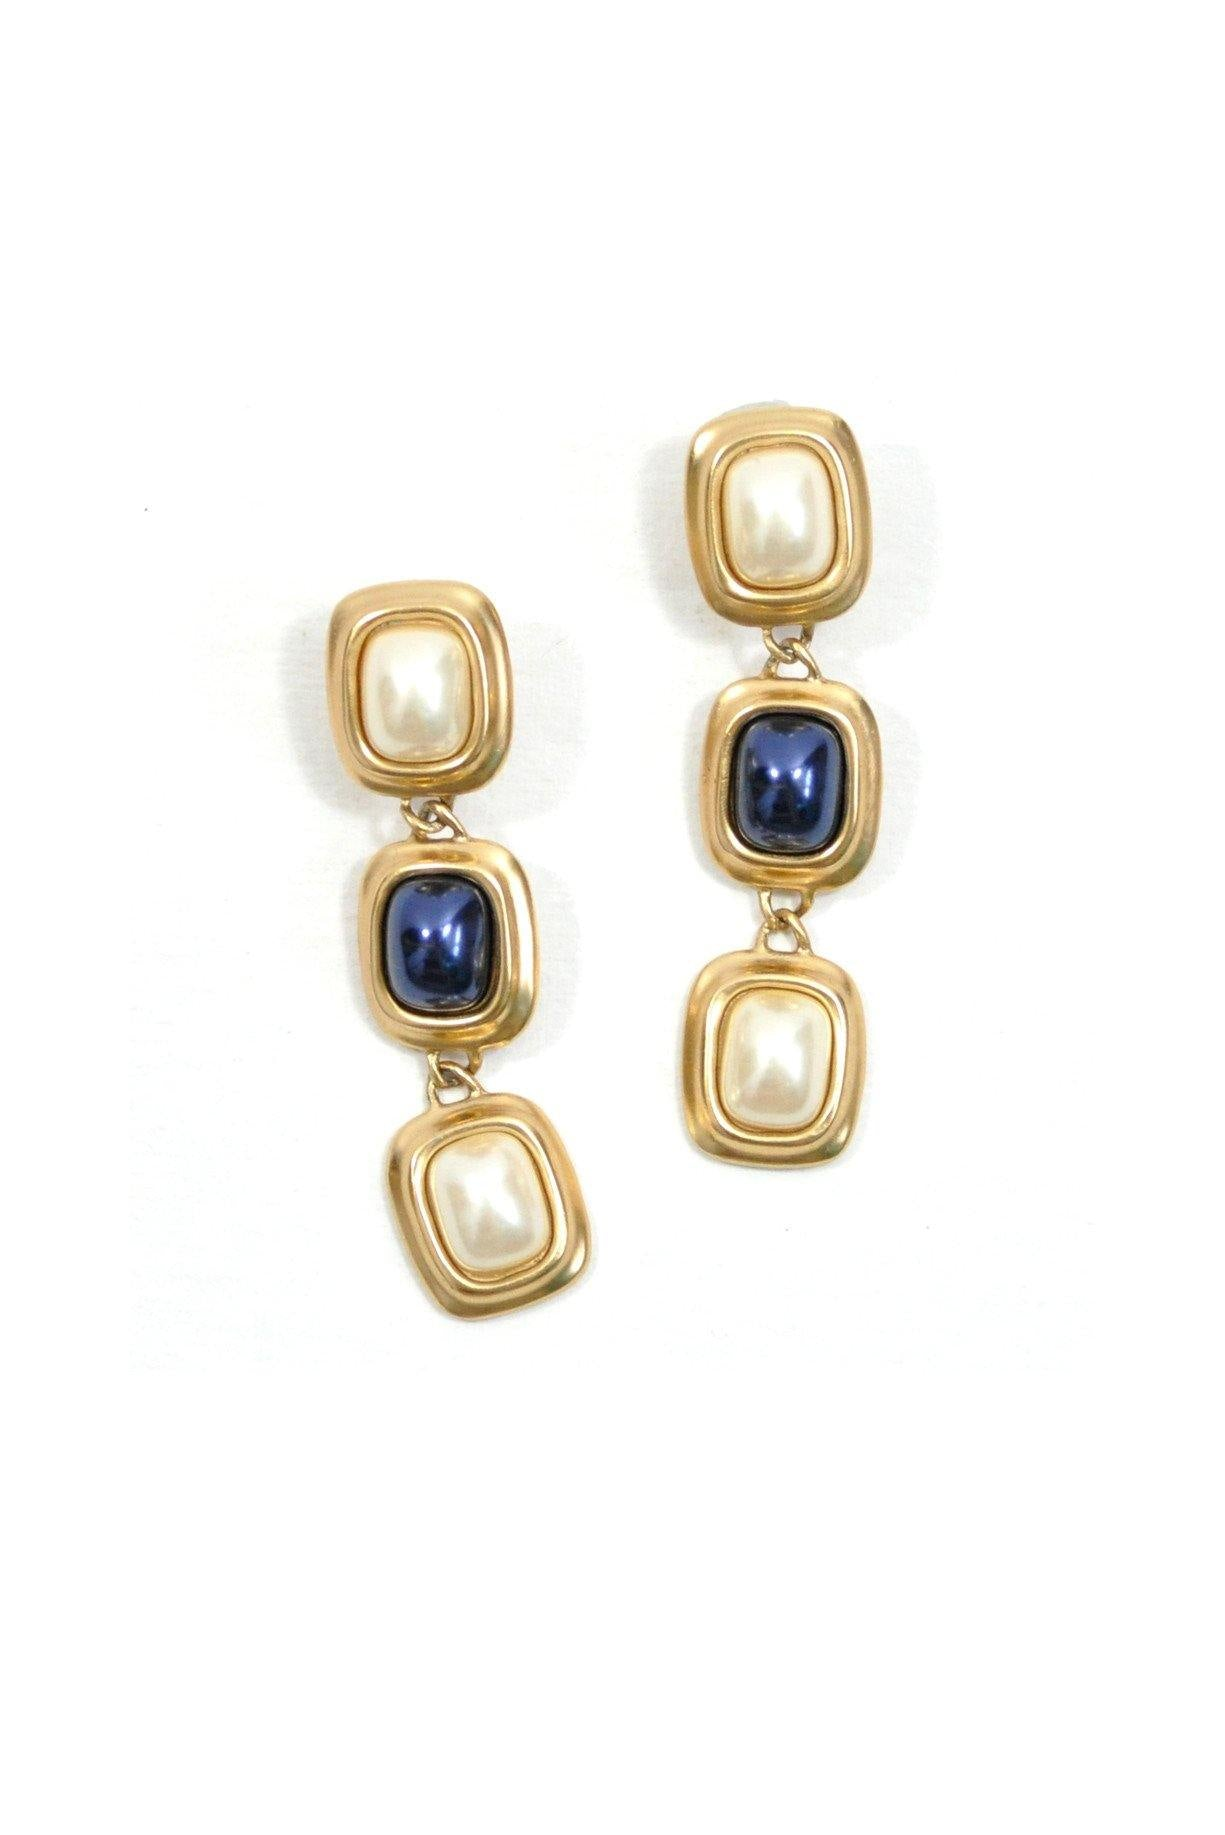 80's__Liz Claiborne__Statement Drop Clip-On Earrings